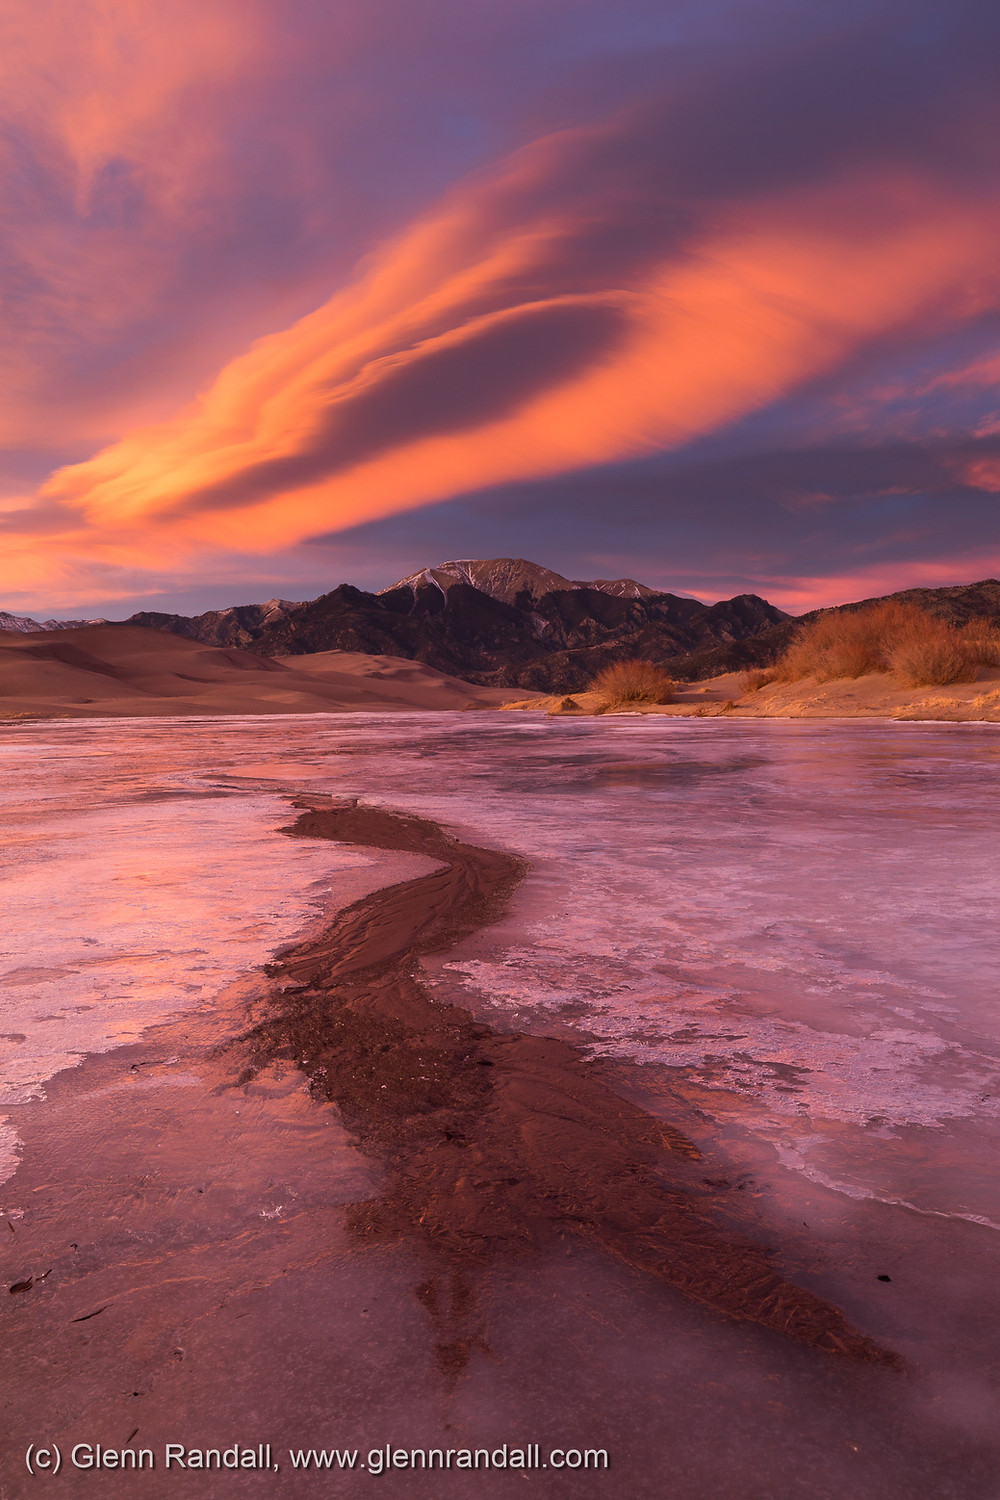 Mt. Herard and Medano Creek at sunset, Great Sand Dunes National Park, Colorado.